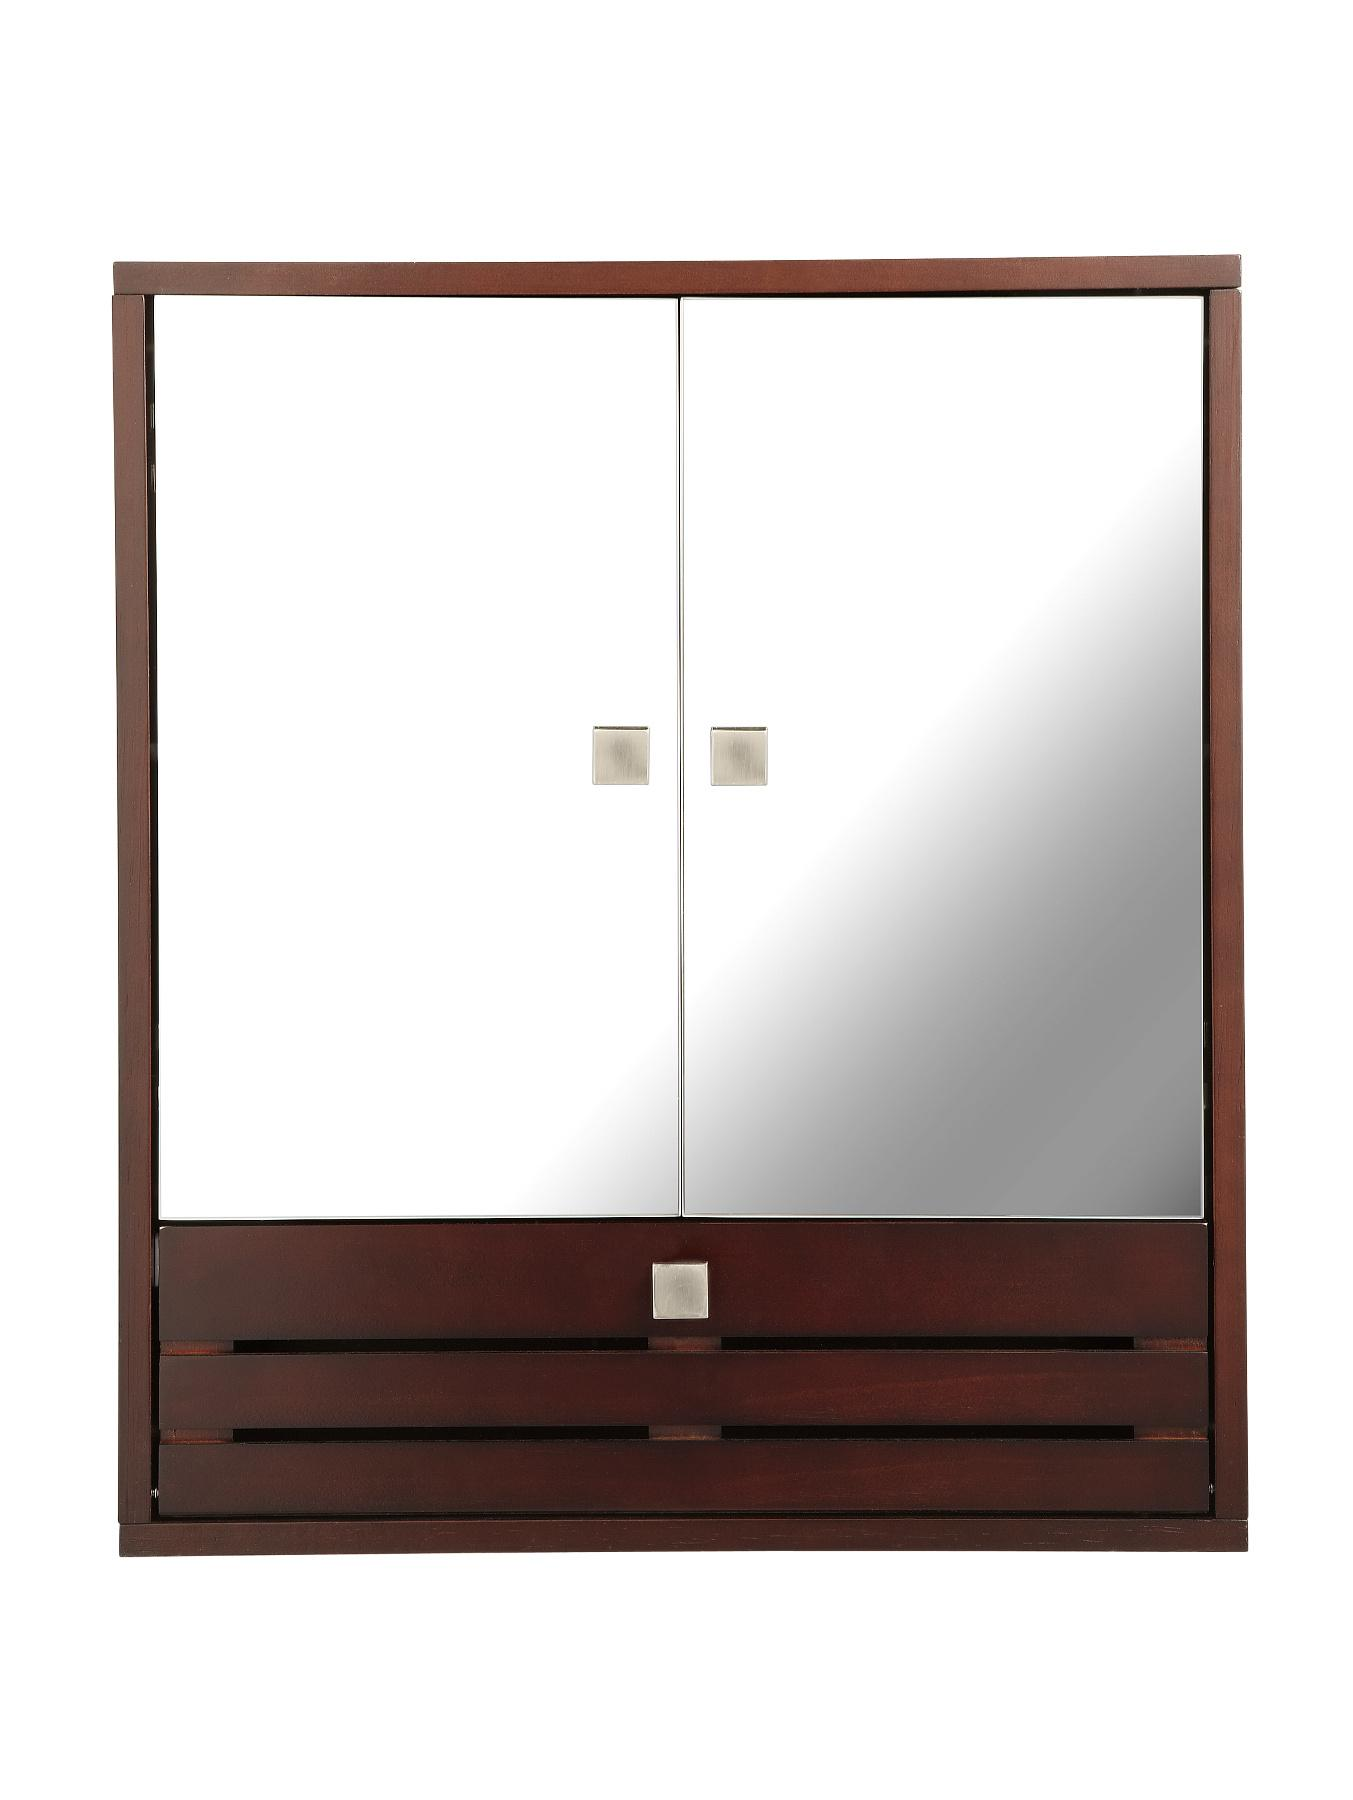 3 Door Mirrored Bathroom Cabinet Slatted 3 Door Mirrored Bathroom Cabinet Dark Wood